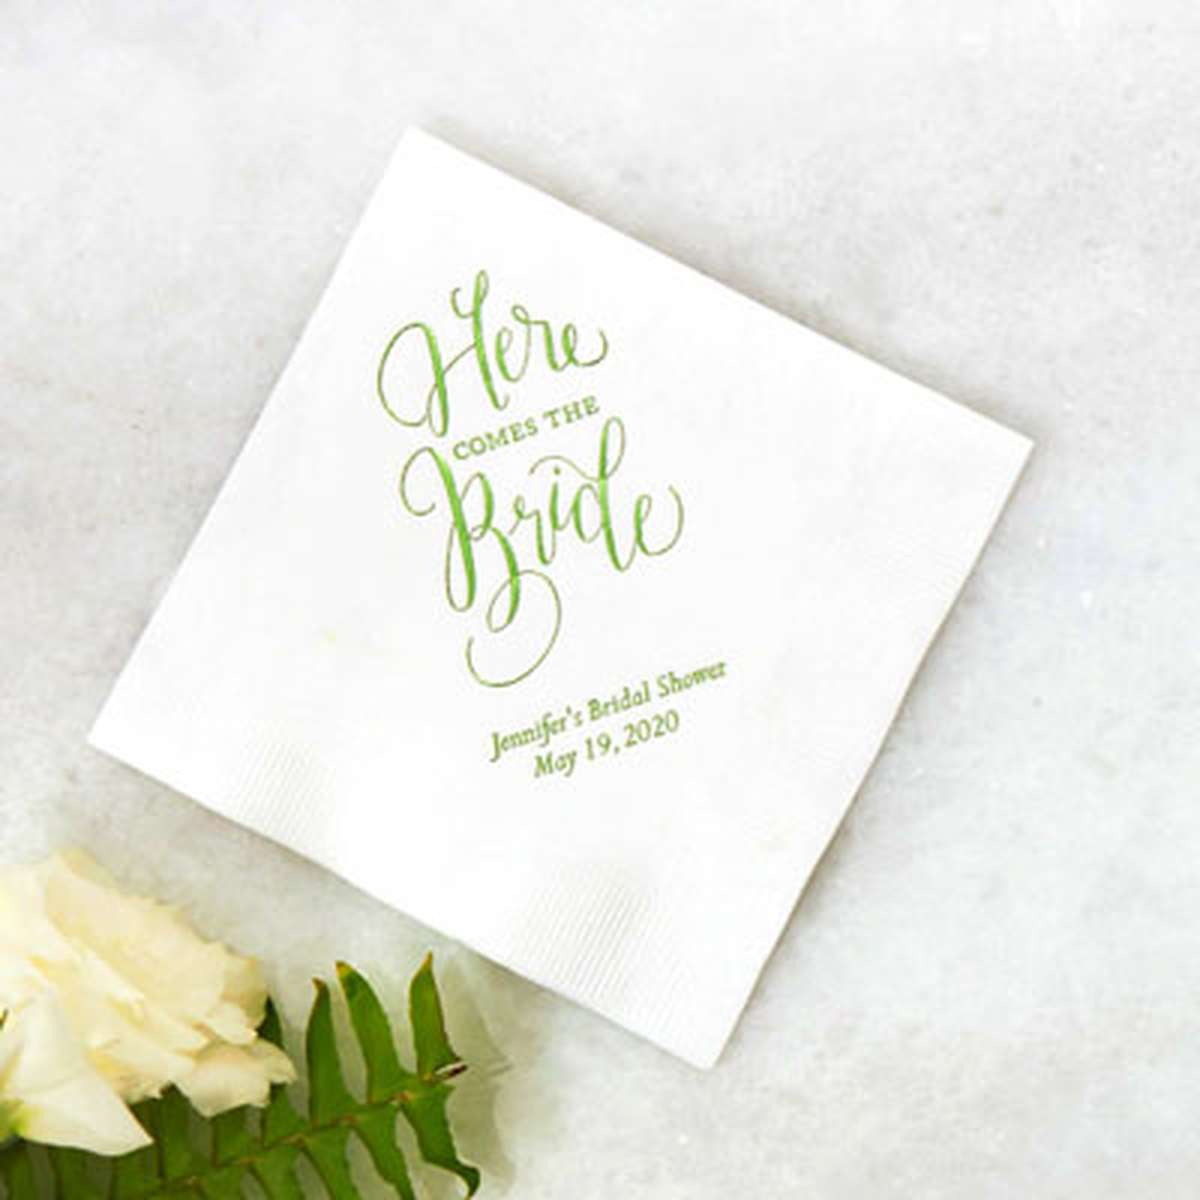 Tail Napkins Personalized Party And Wedding For Your